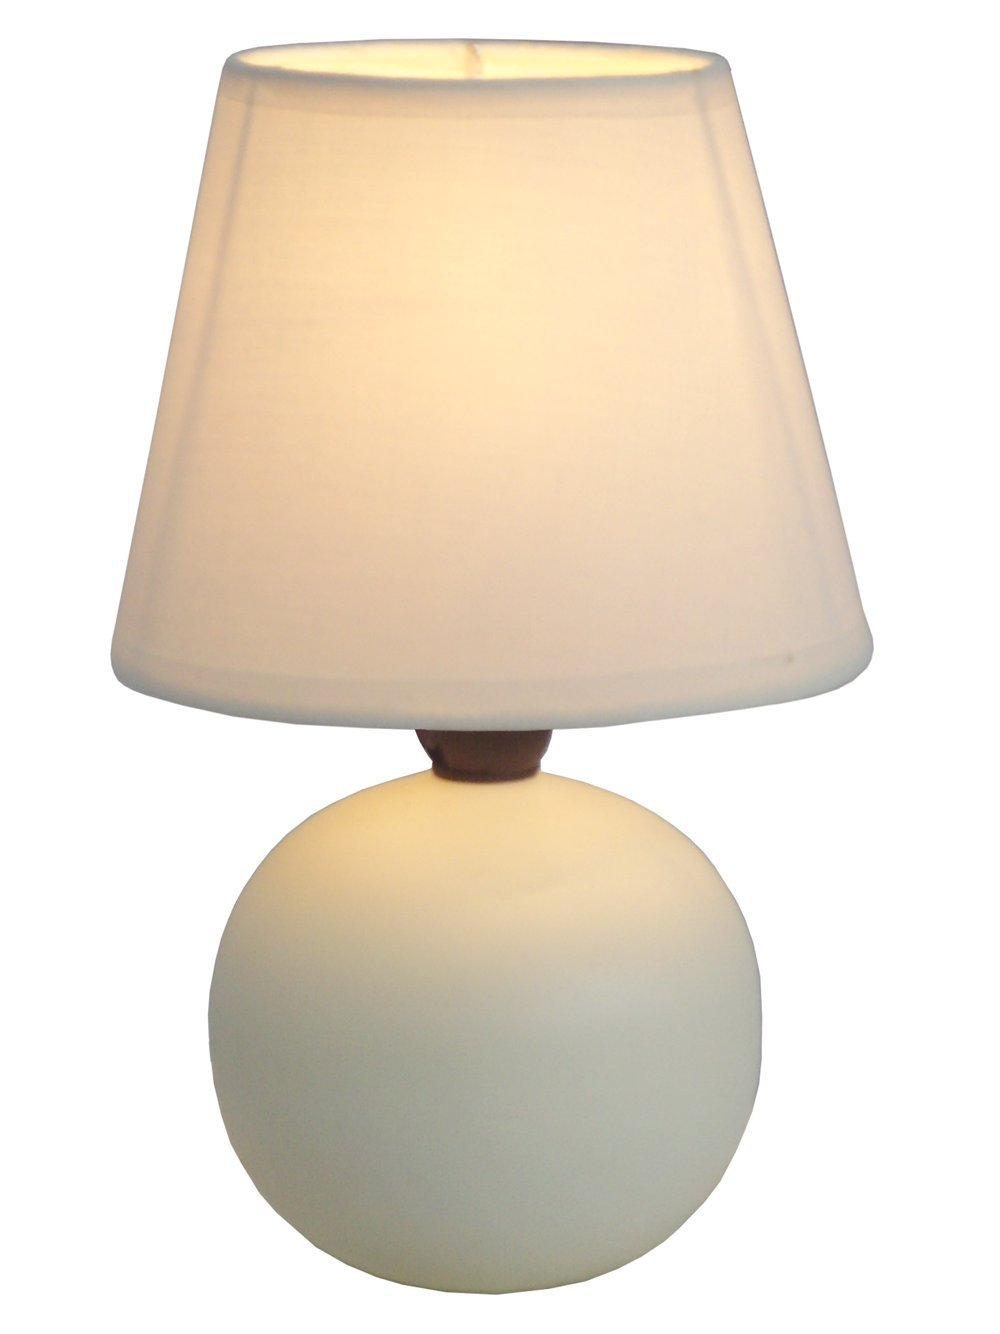 Simple Designs LT2008-OFF Mini Ceramic Globe Table Lamp, Off White